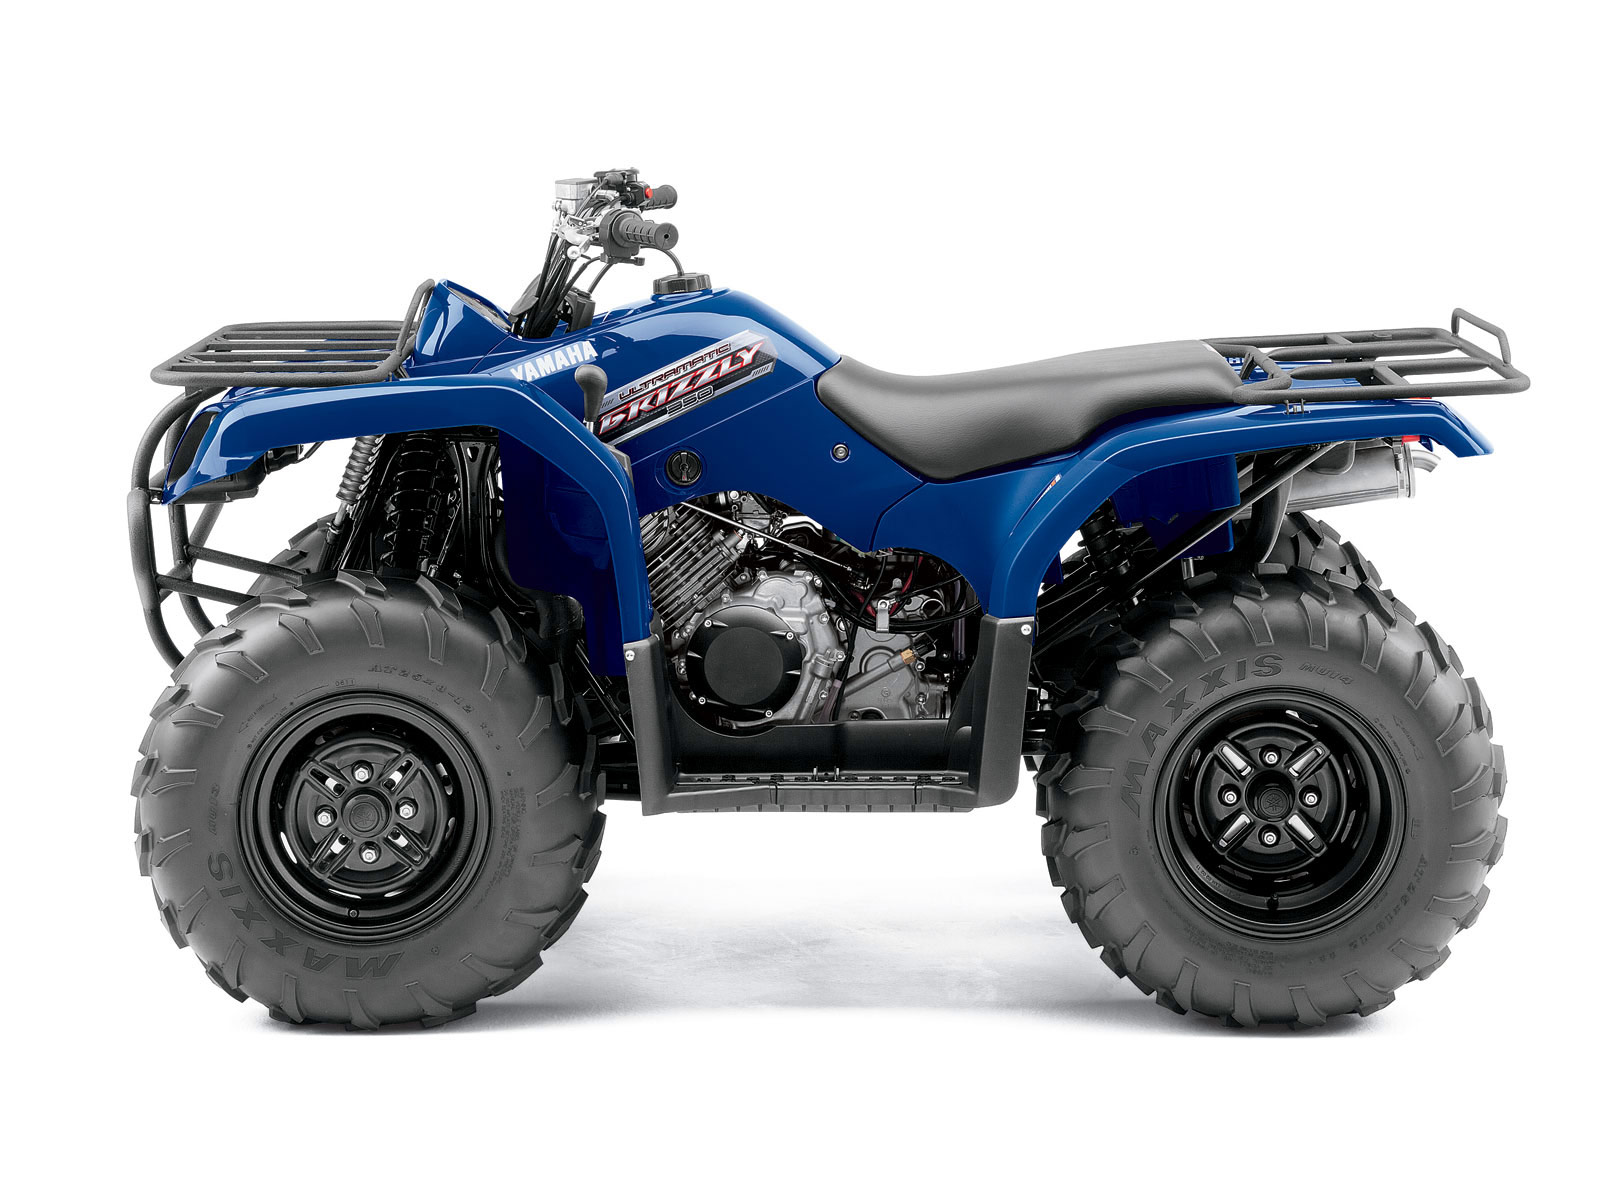 2012 yamaha grizzly 350 auto 4x4 atv pictures